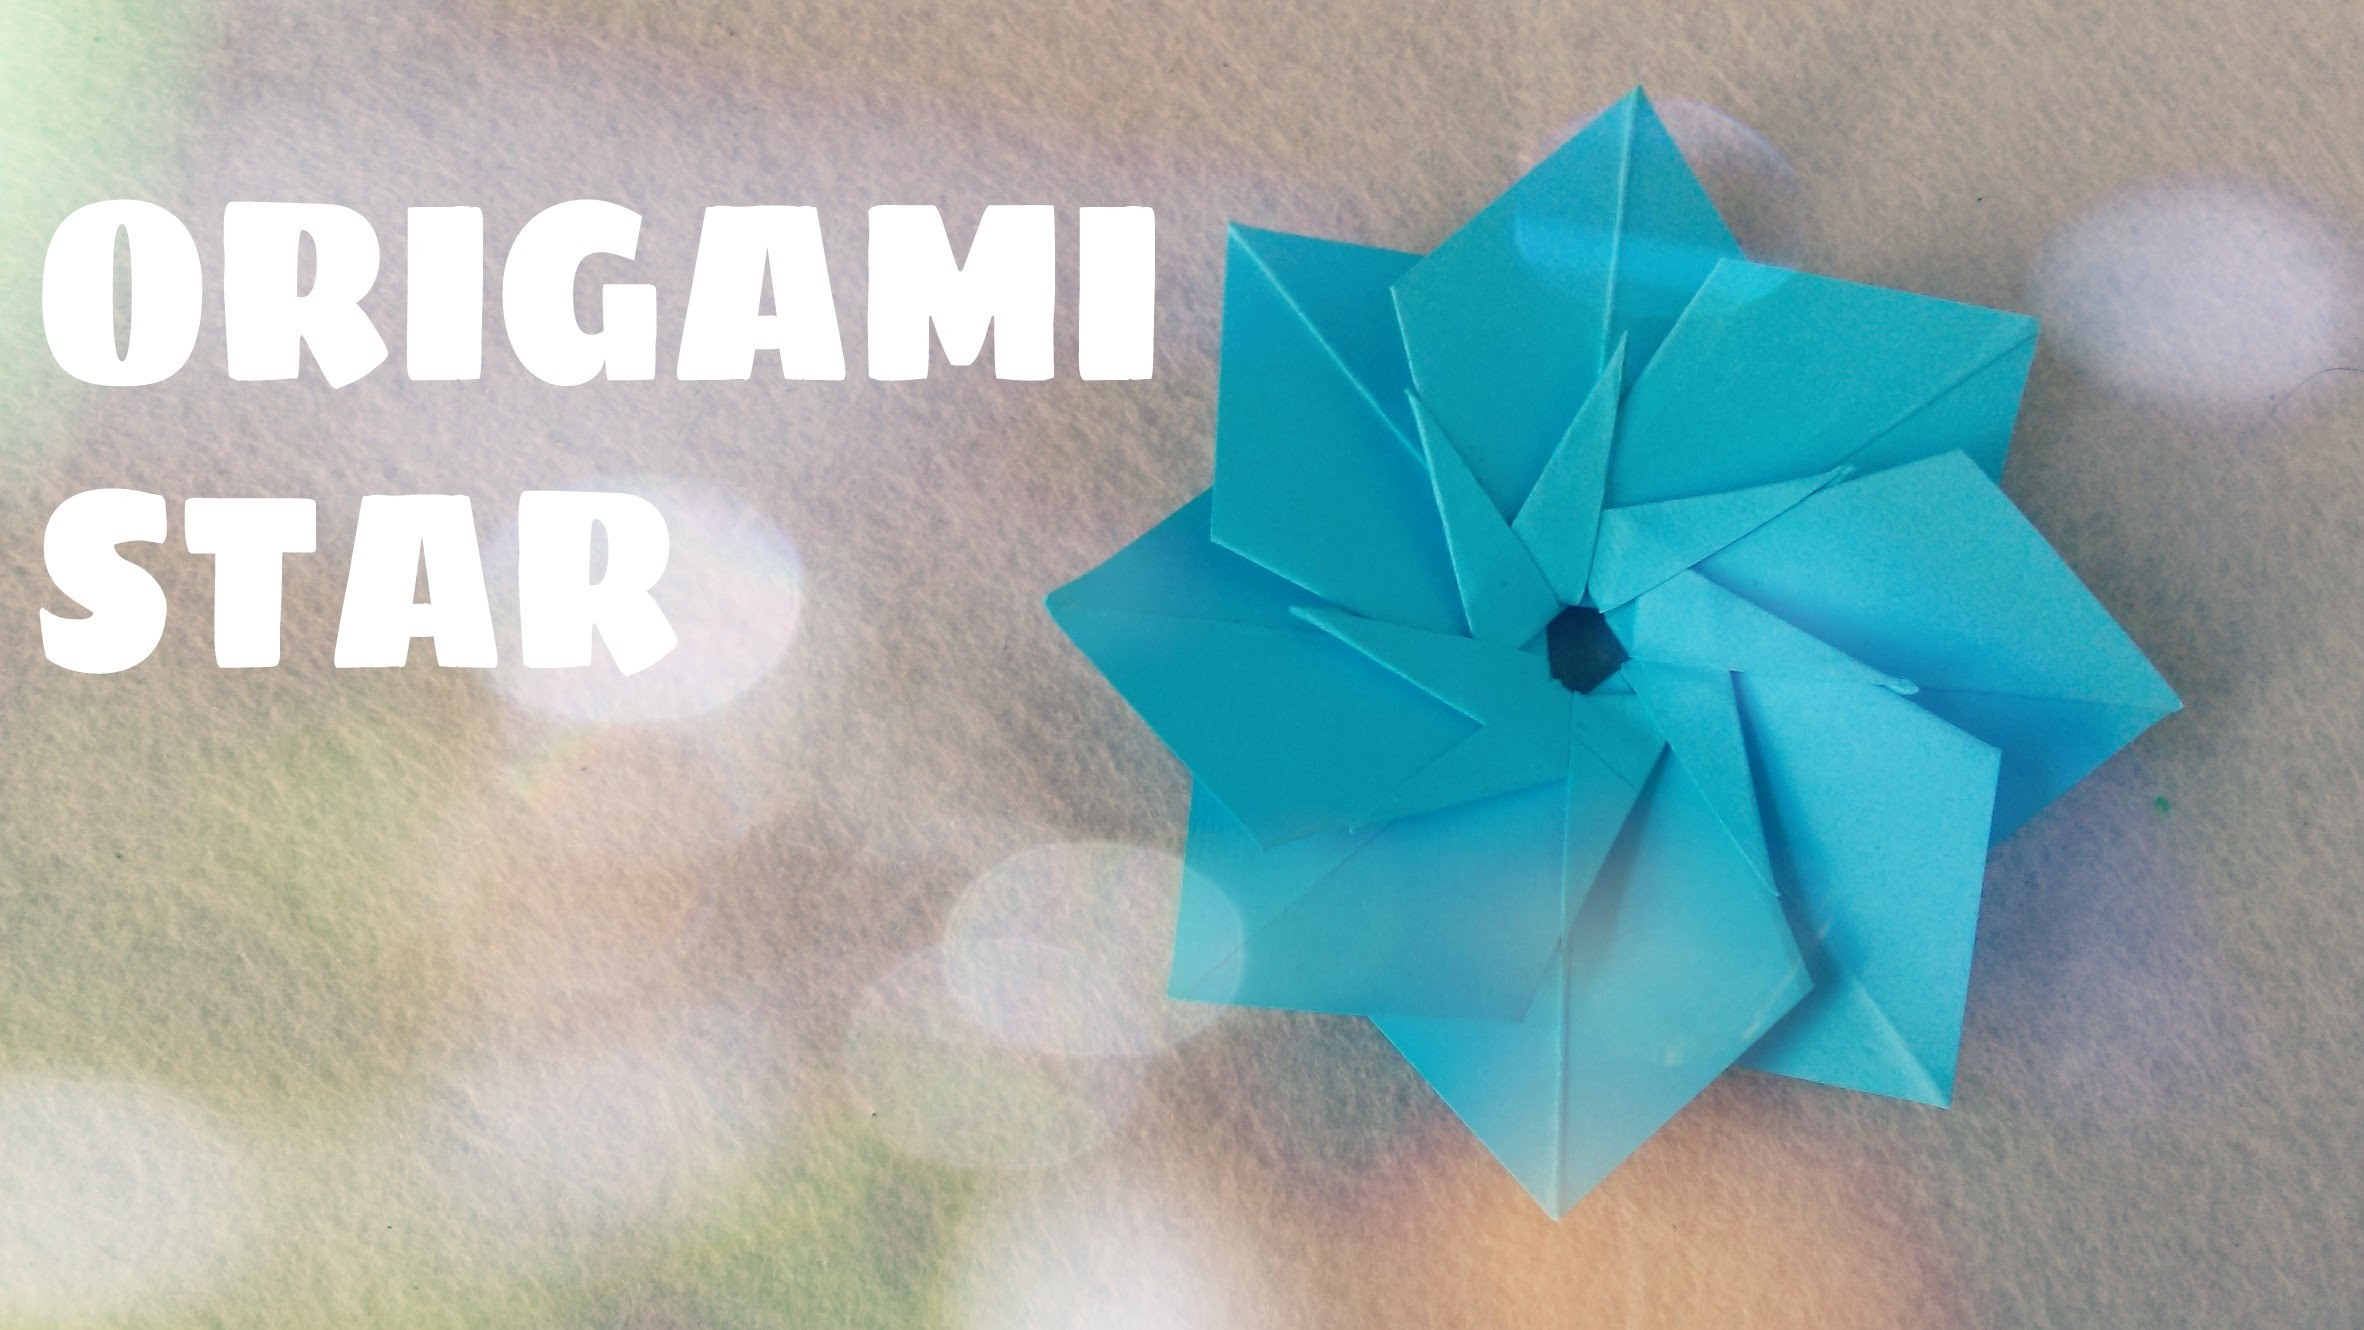 DIY Origami Ornament - Origami Spiral Star (Easy)